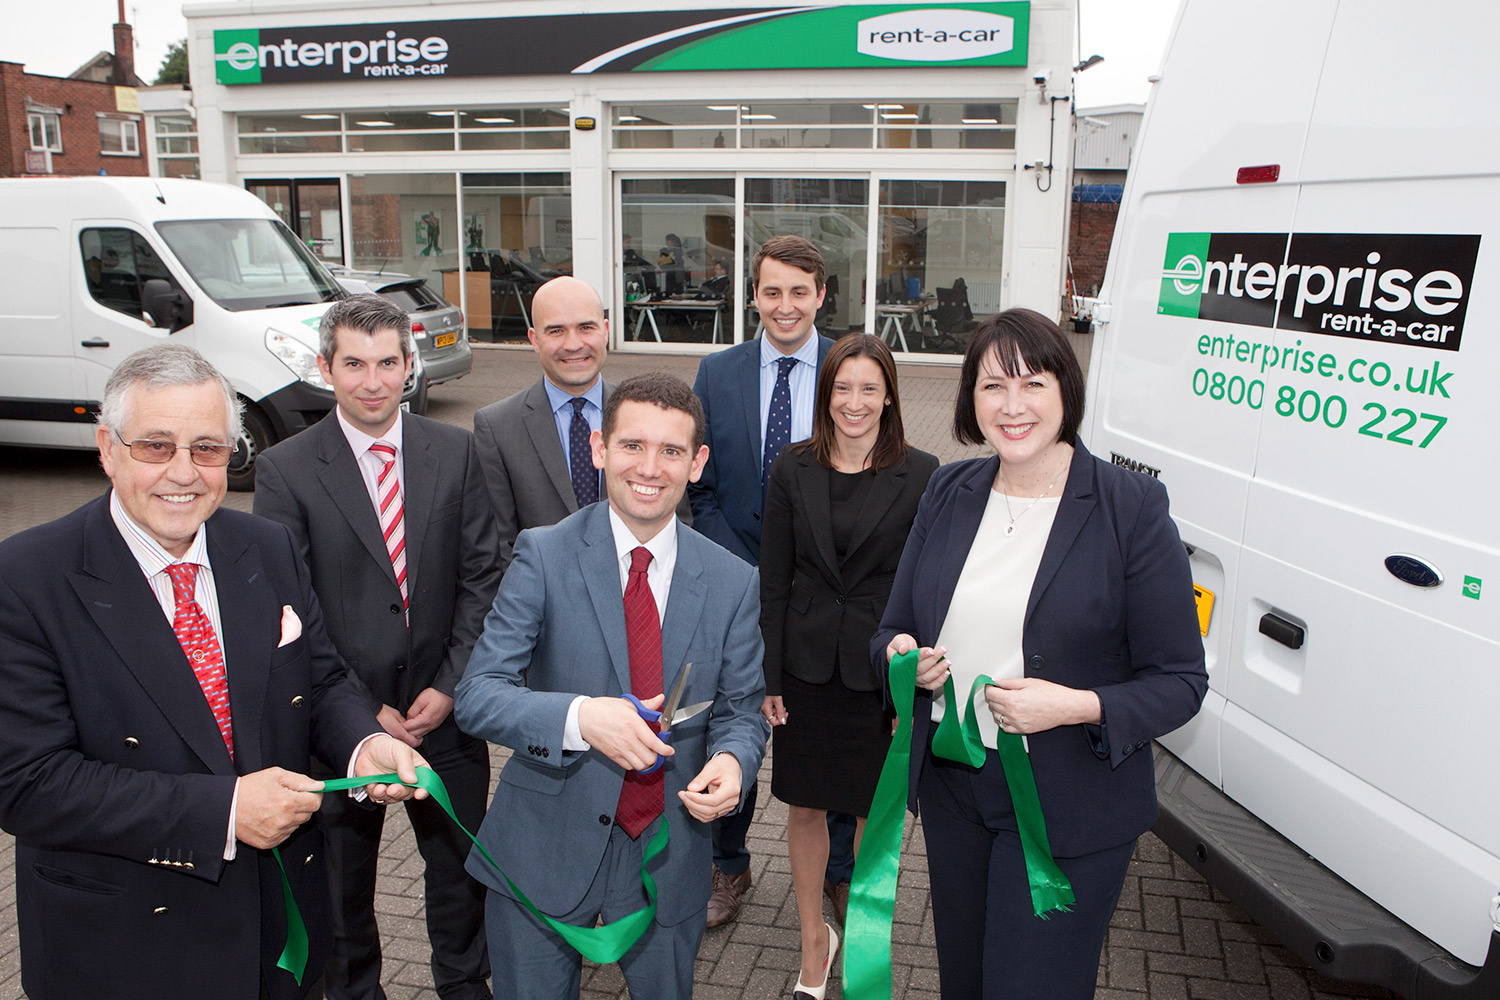 Enterprise rent a car opening event in Norwich. Photo: Keith Mindham